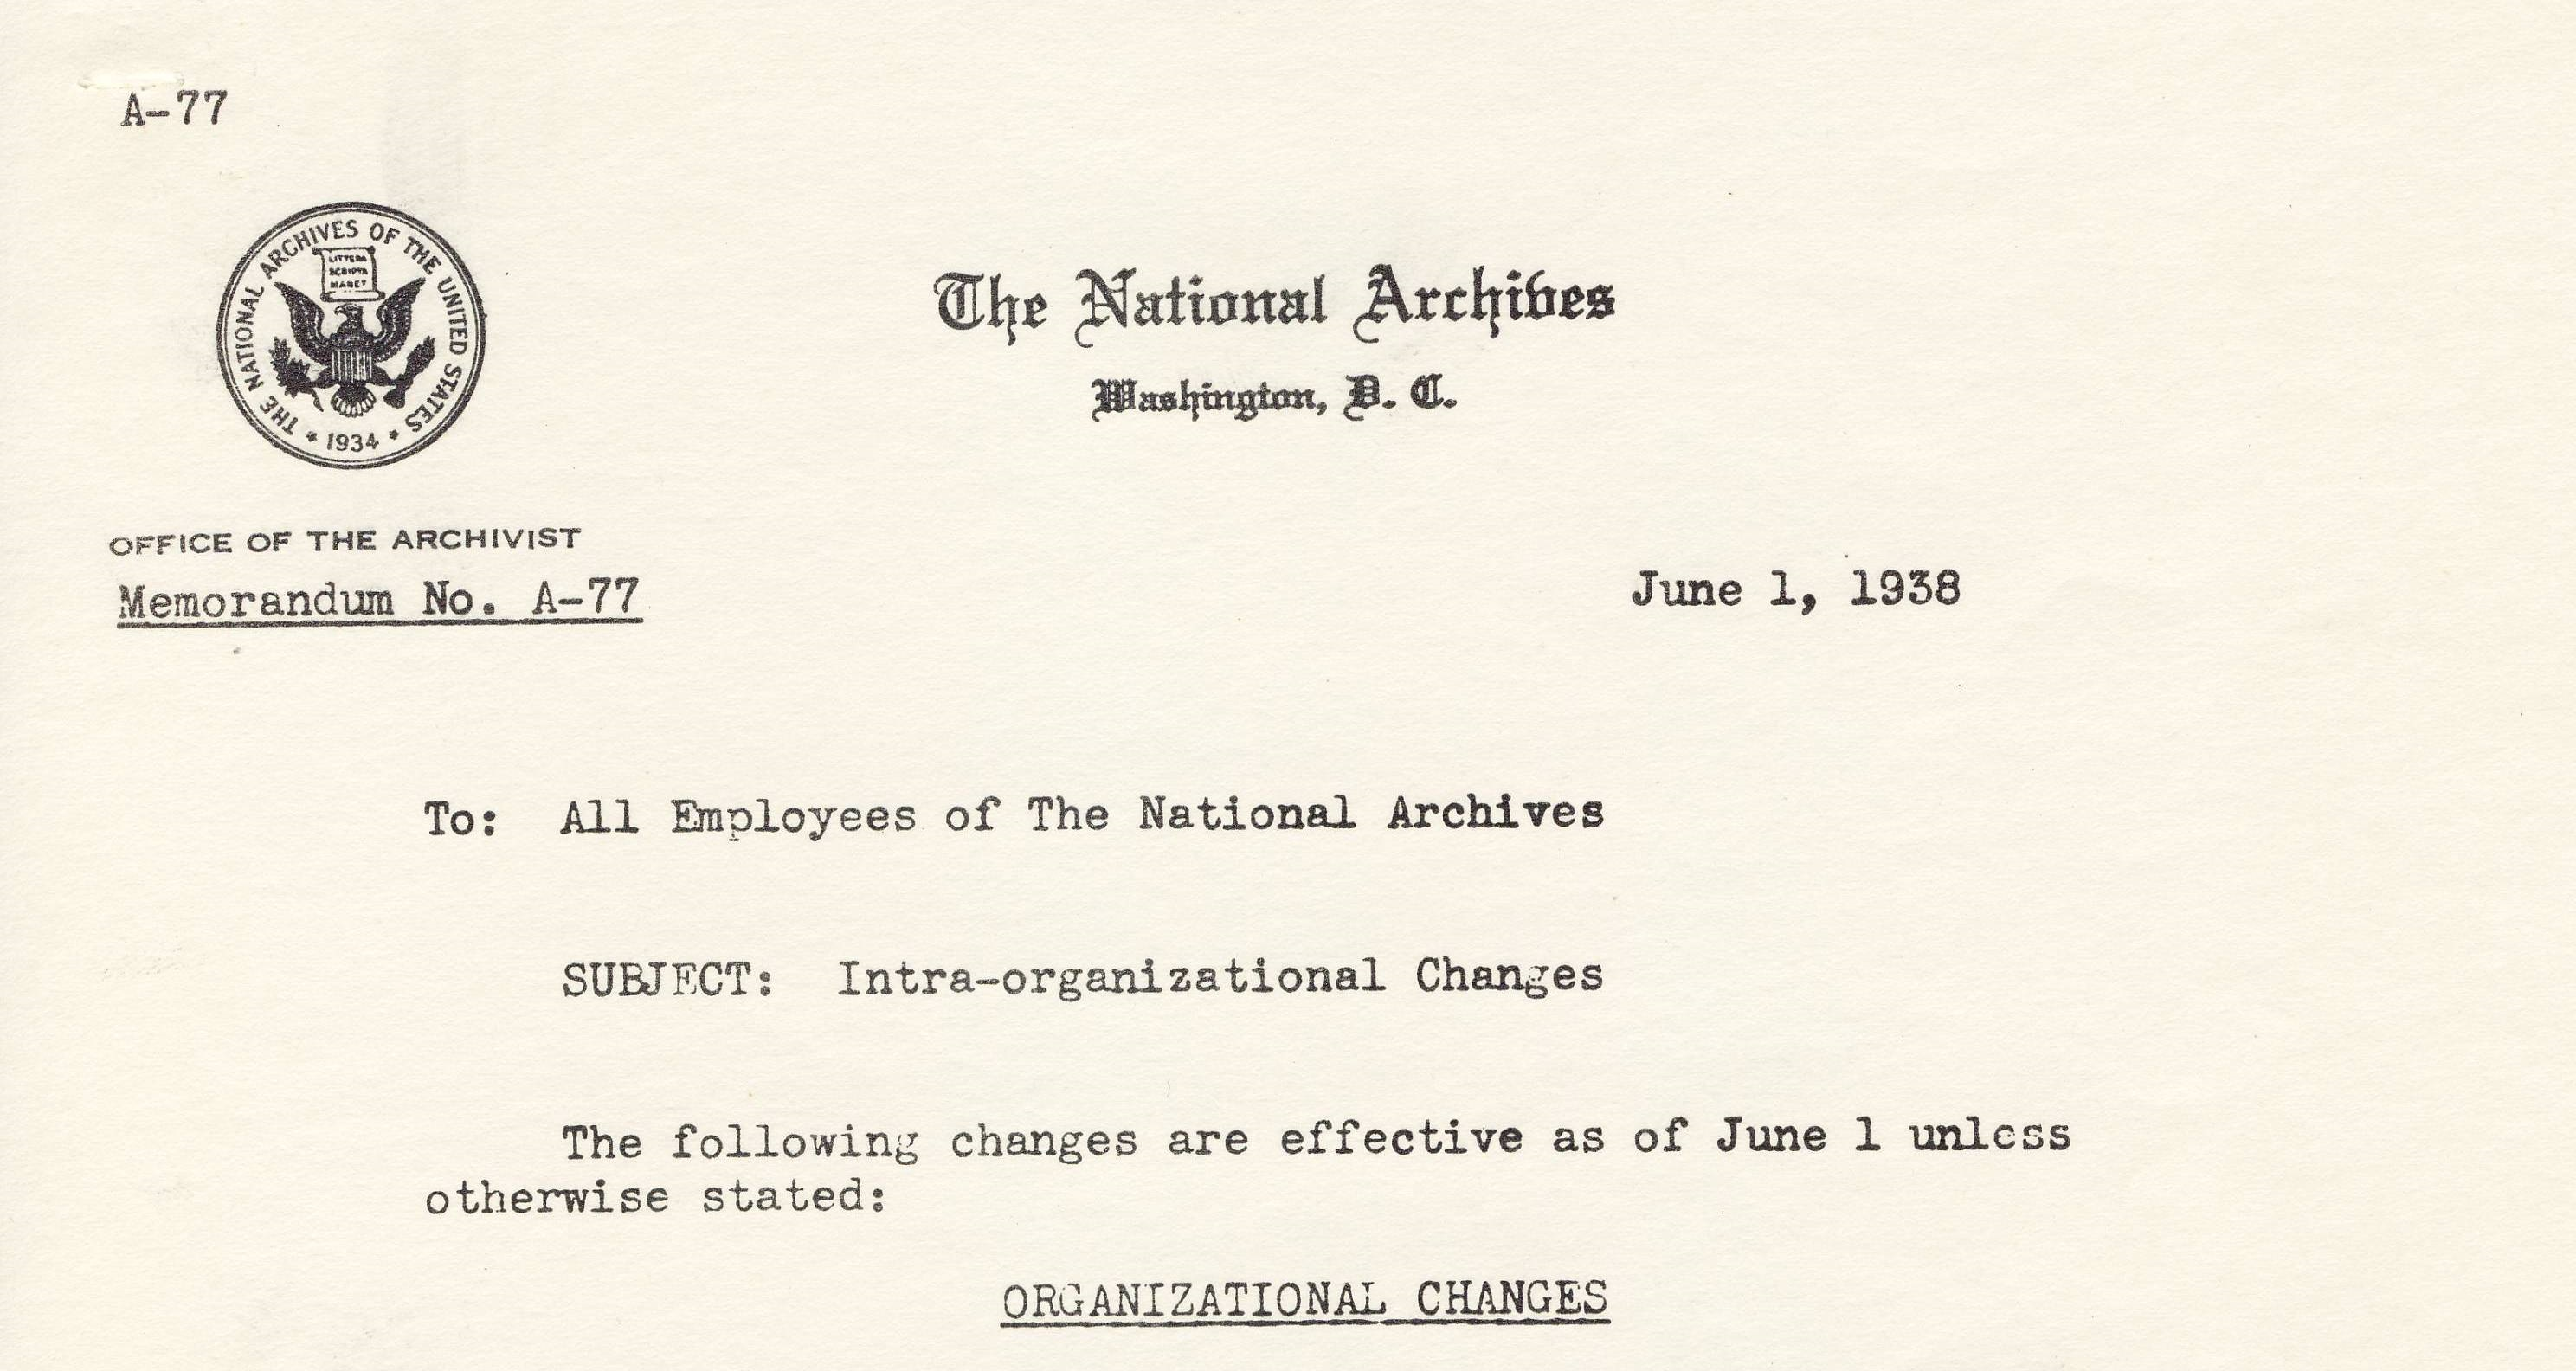 RG 64, A1 9 - Memo A-77 Intra-Organizational Changes, June 1, 1938 - page 1 - header cropped.jpg